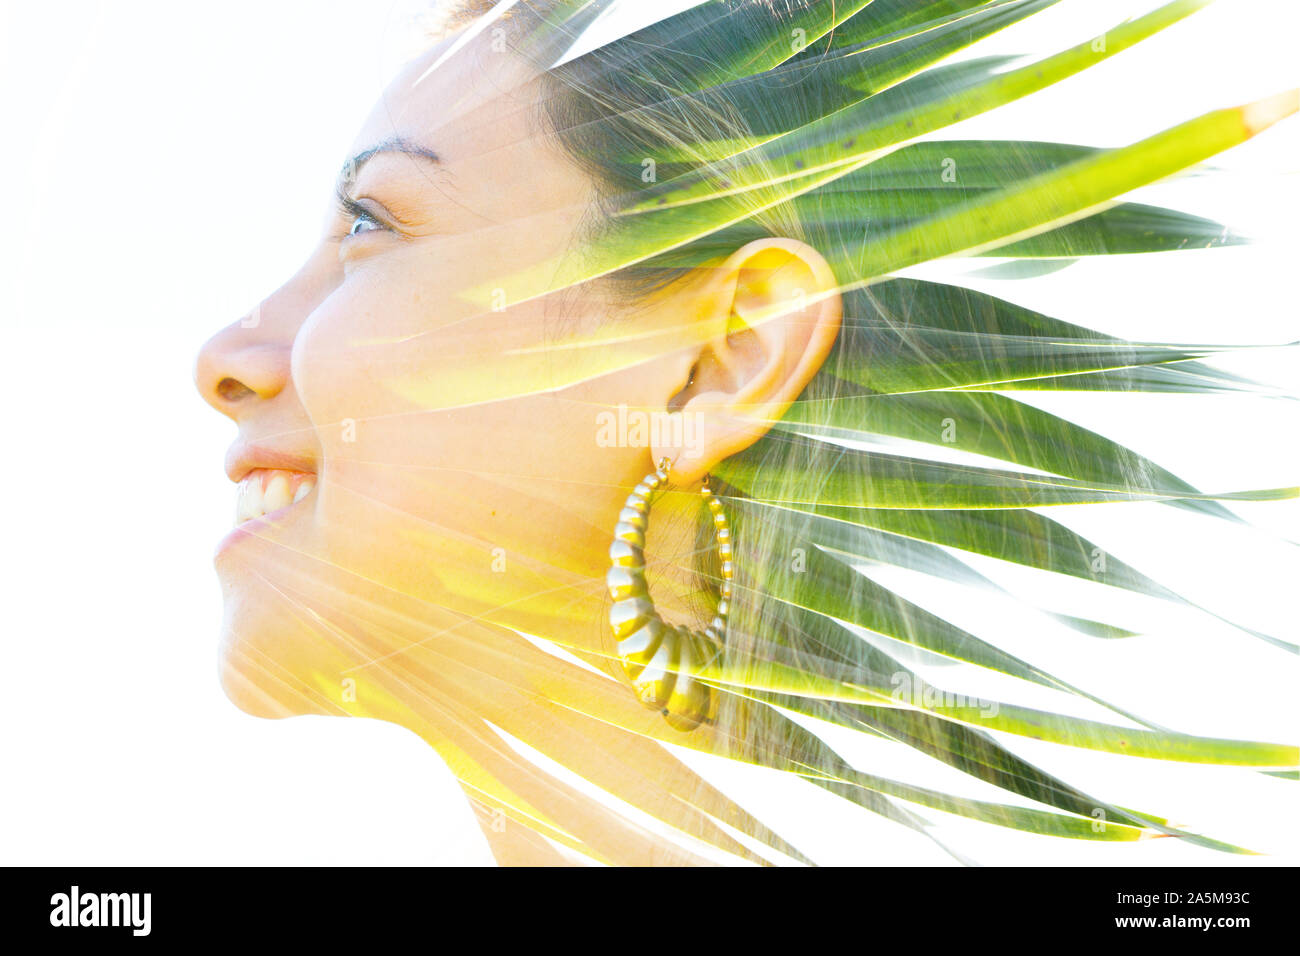 Double exposure profile portrait of a young, relaxed natural beauty large golden earrings and long brown hair combined with green tropical leaves on a Stock Photo